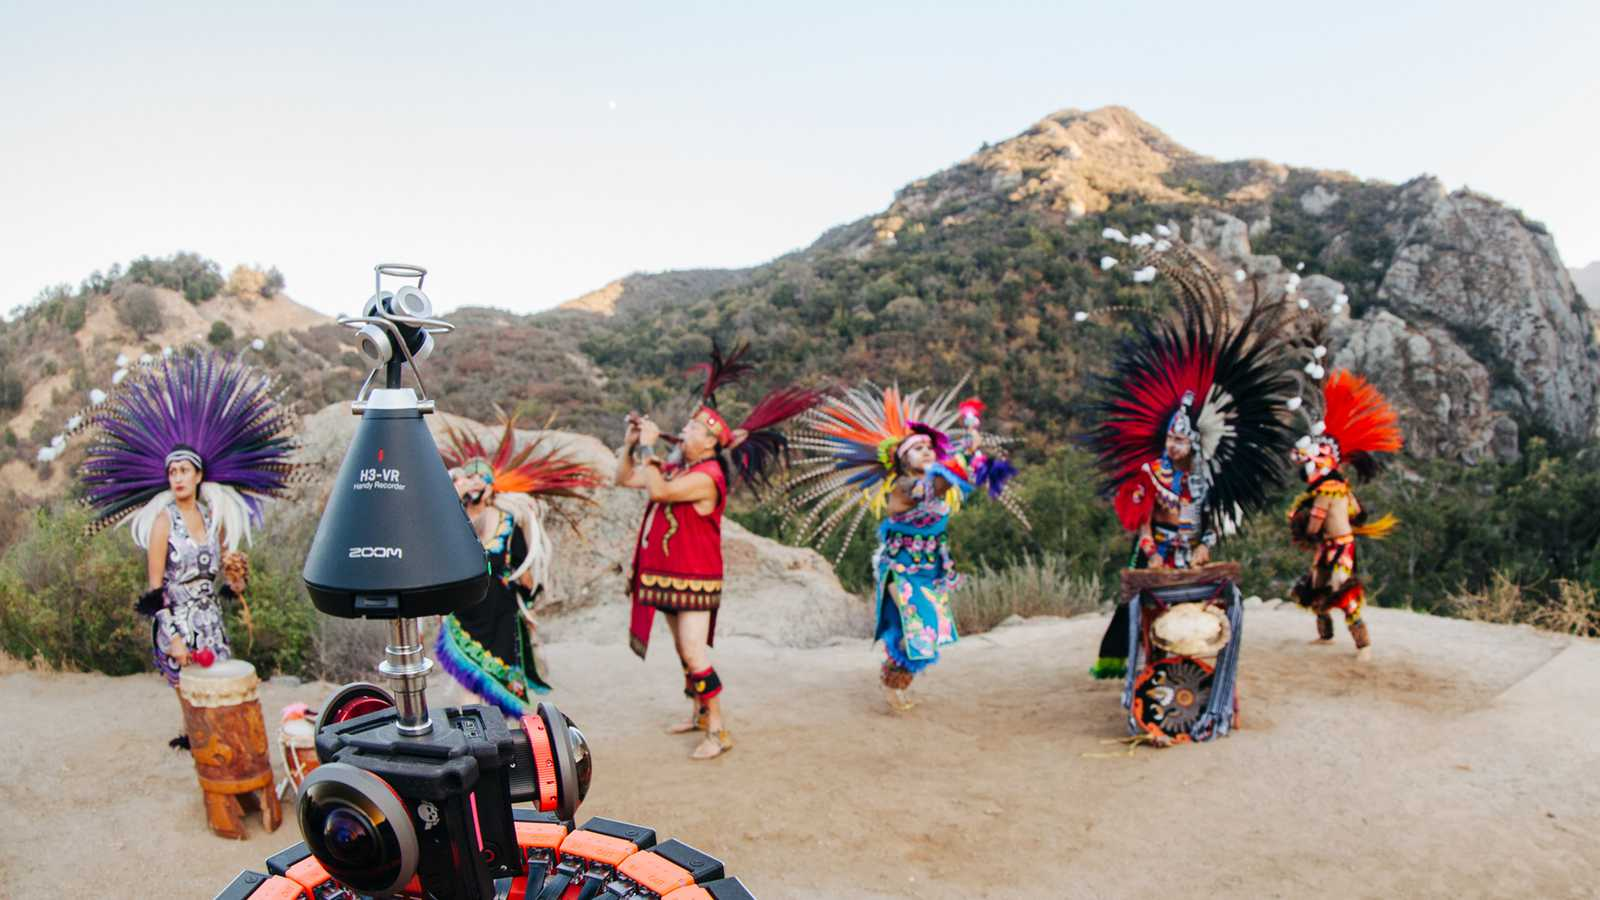 H3-VR capturing the sounds of an Ancient Aztec music and dance troup